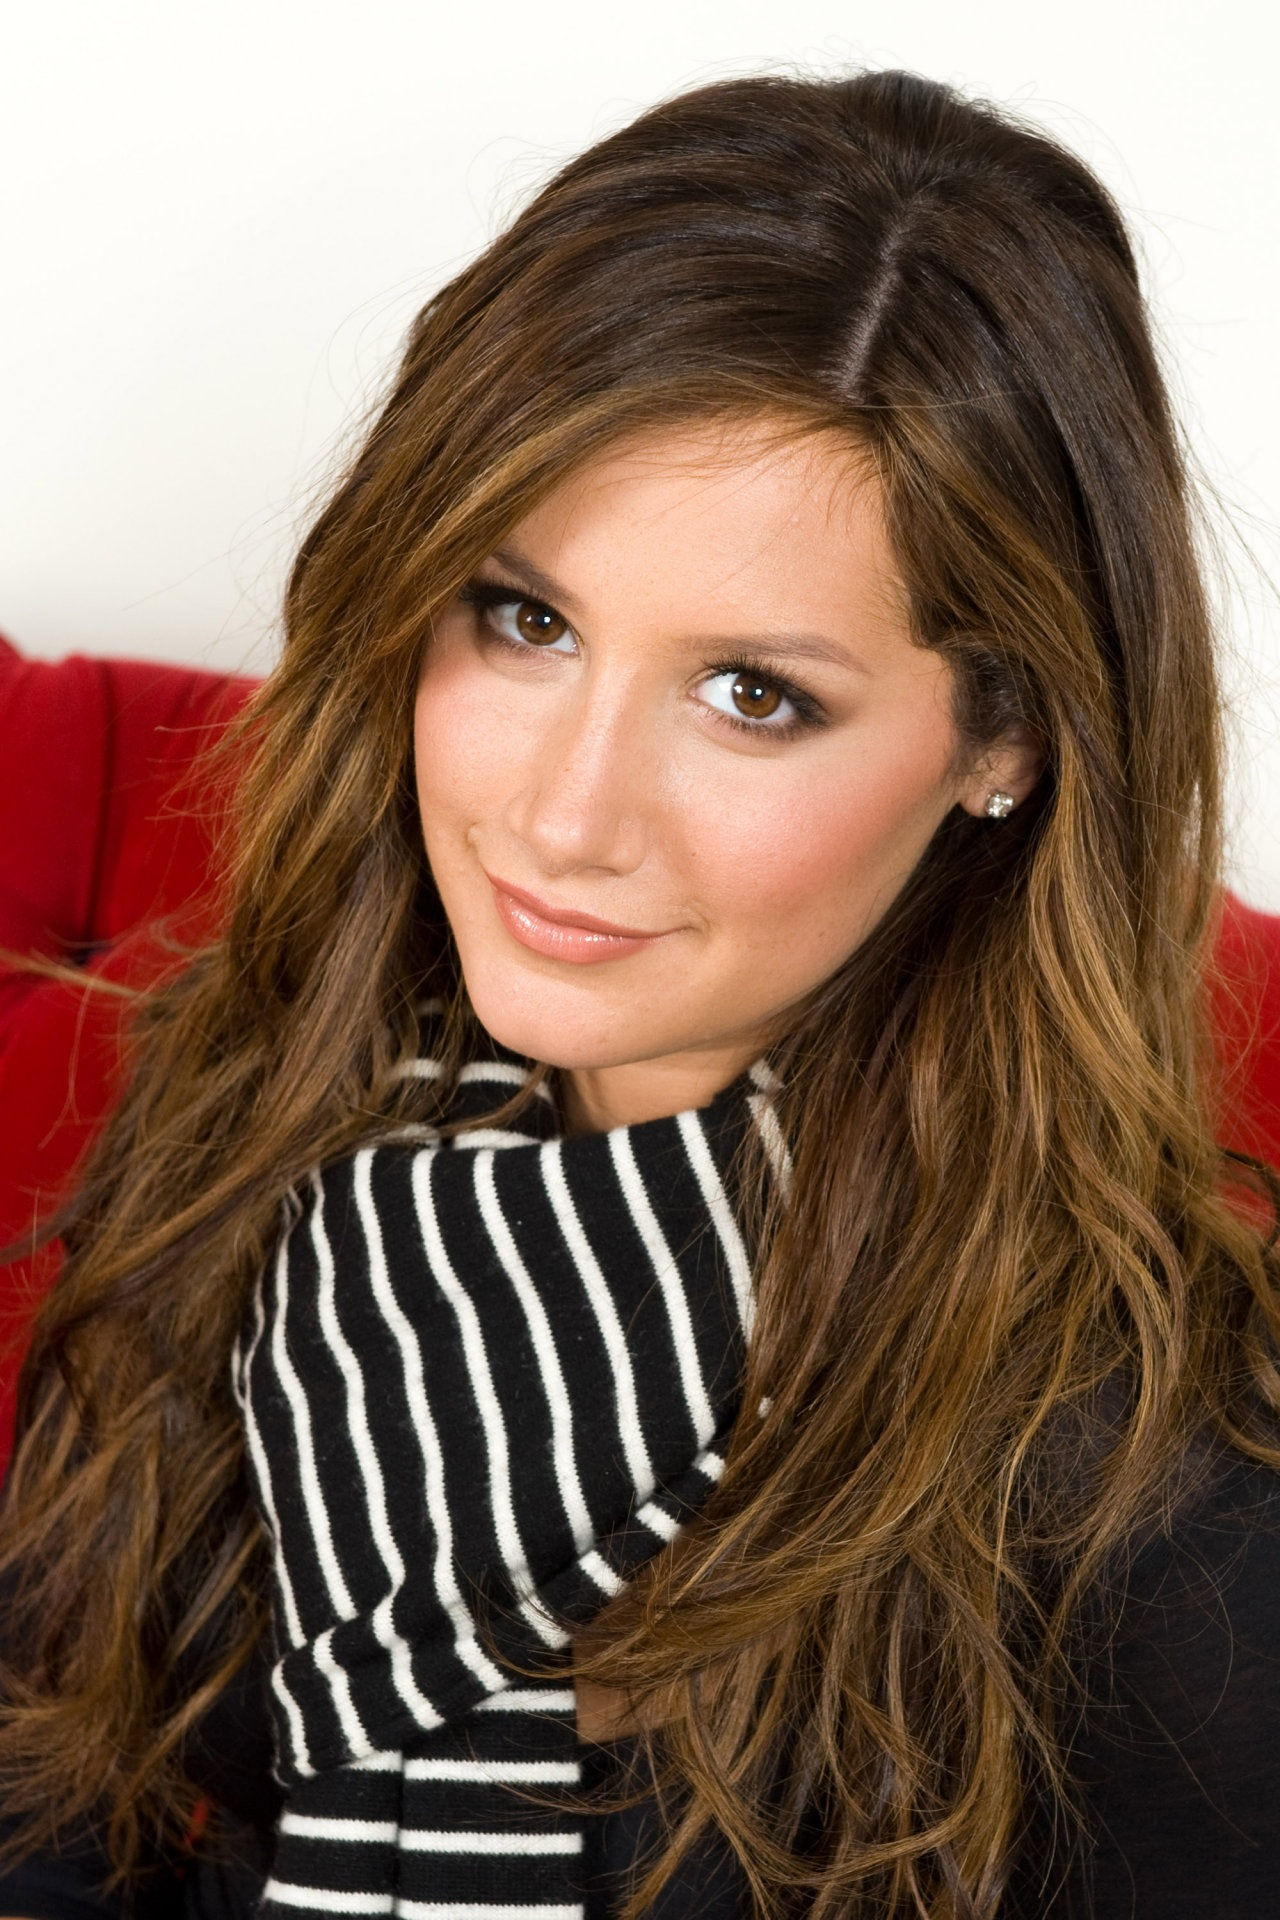 Эшли Тисдэйл (Ashley Tisdale) фото | ThePlace - фотографии